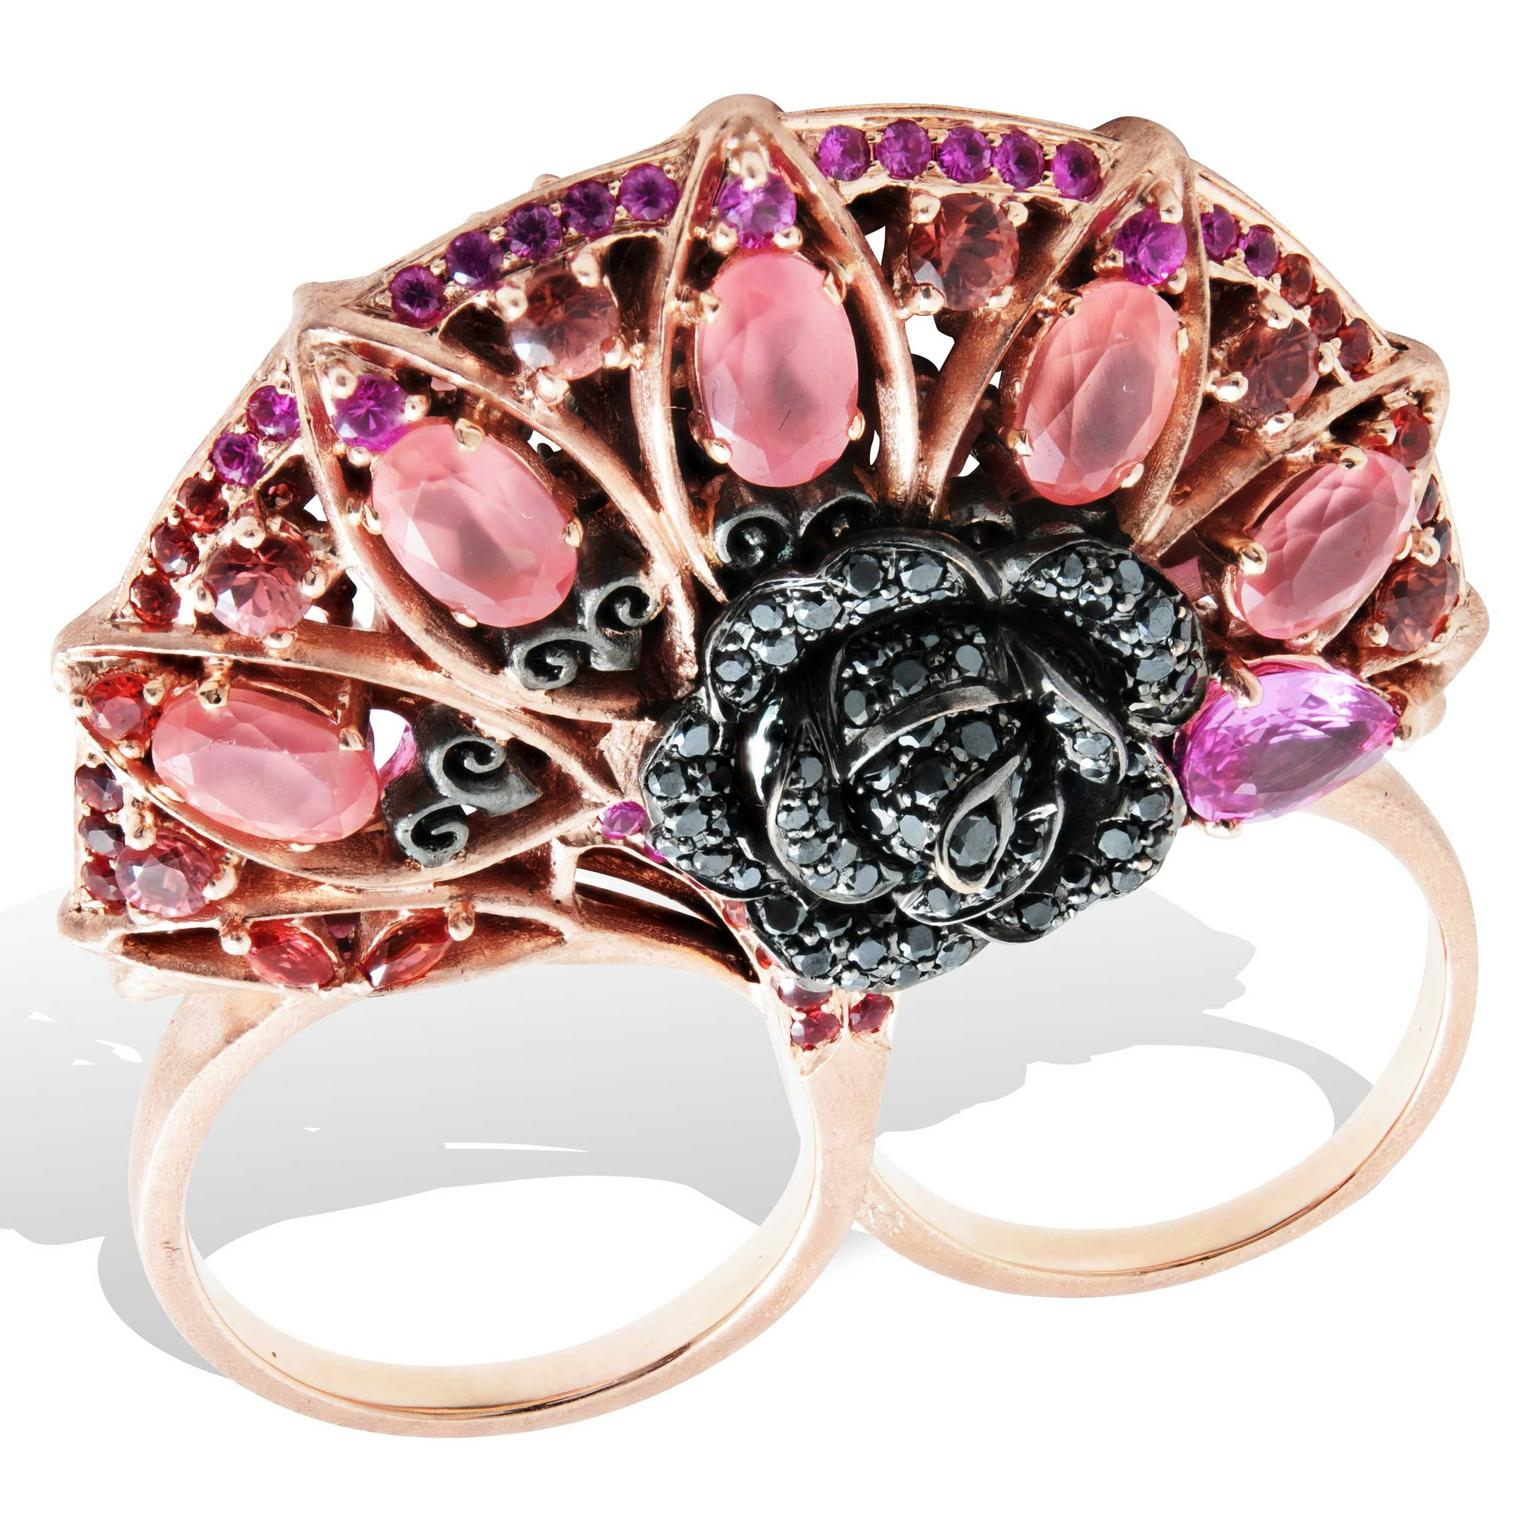 Lydia Courteille Rosa del Inca double finger rhodochrosite ring